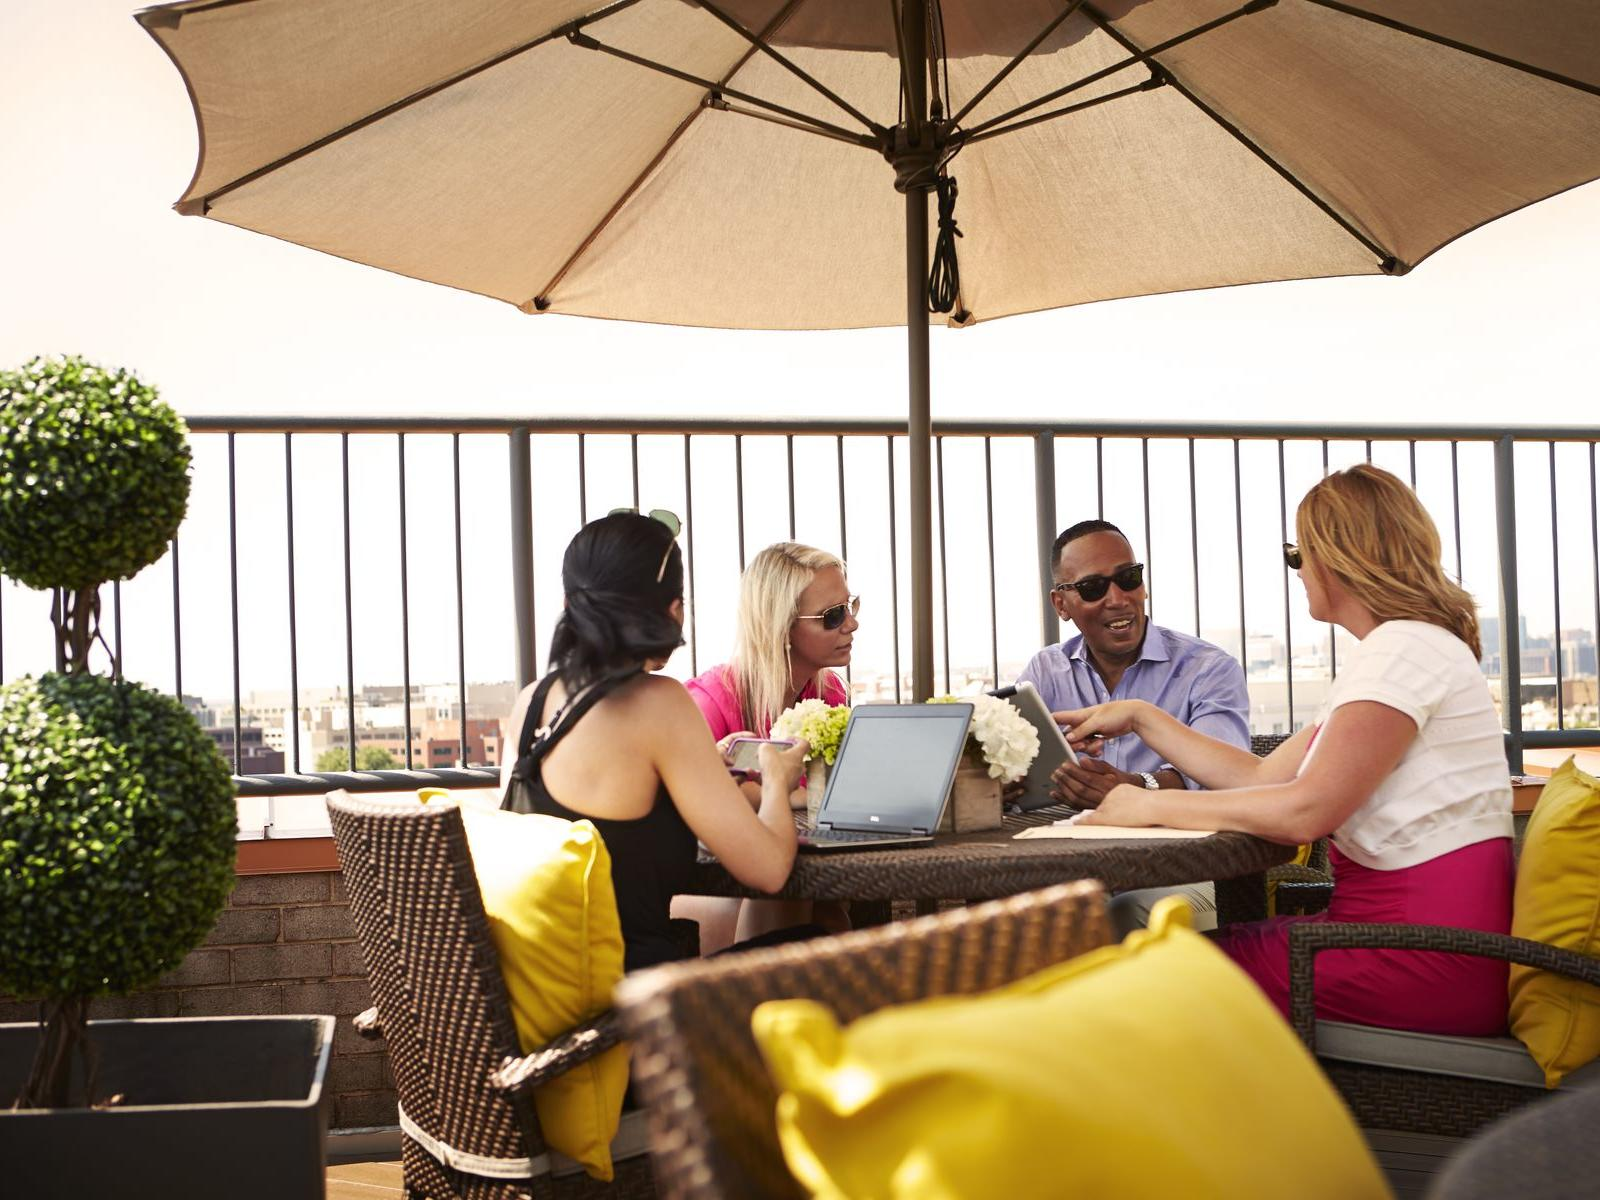 Guests working at table at the rooftop patio